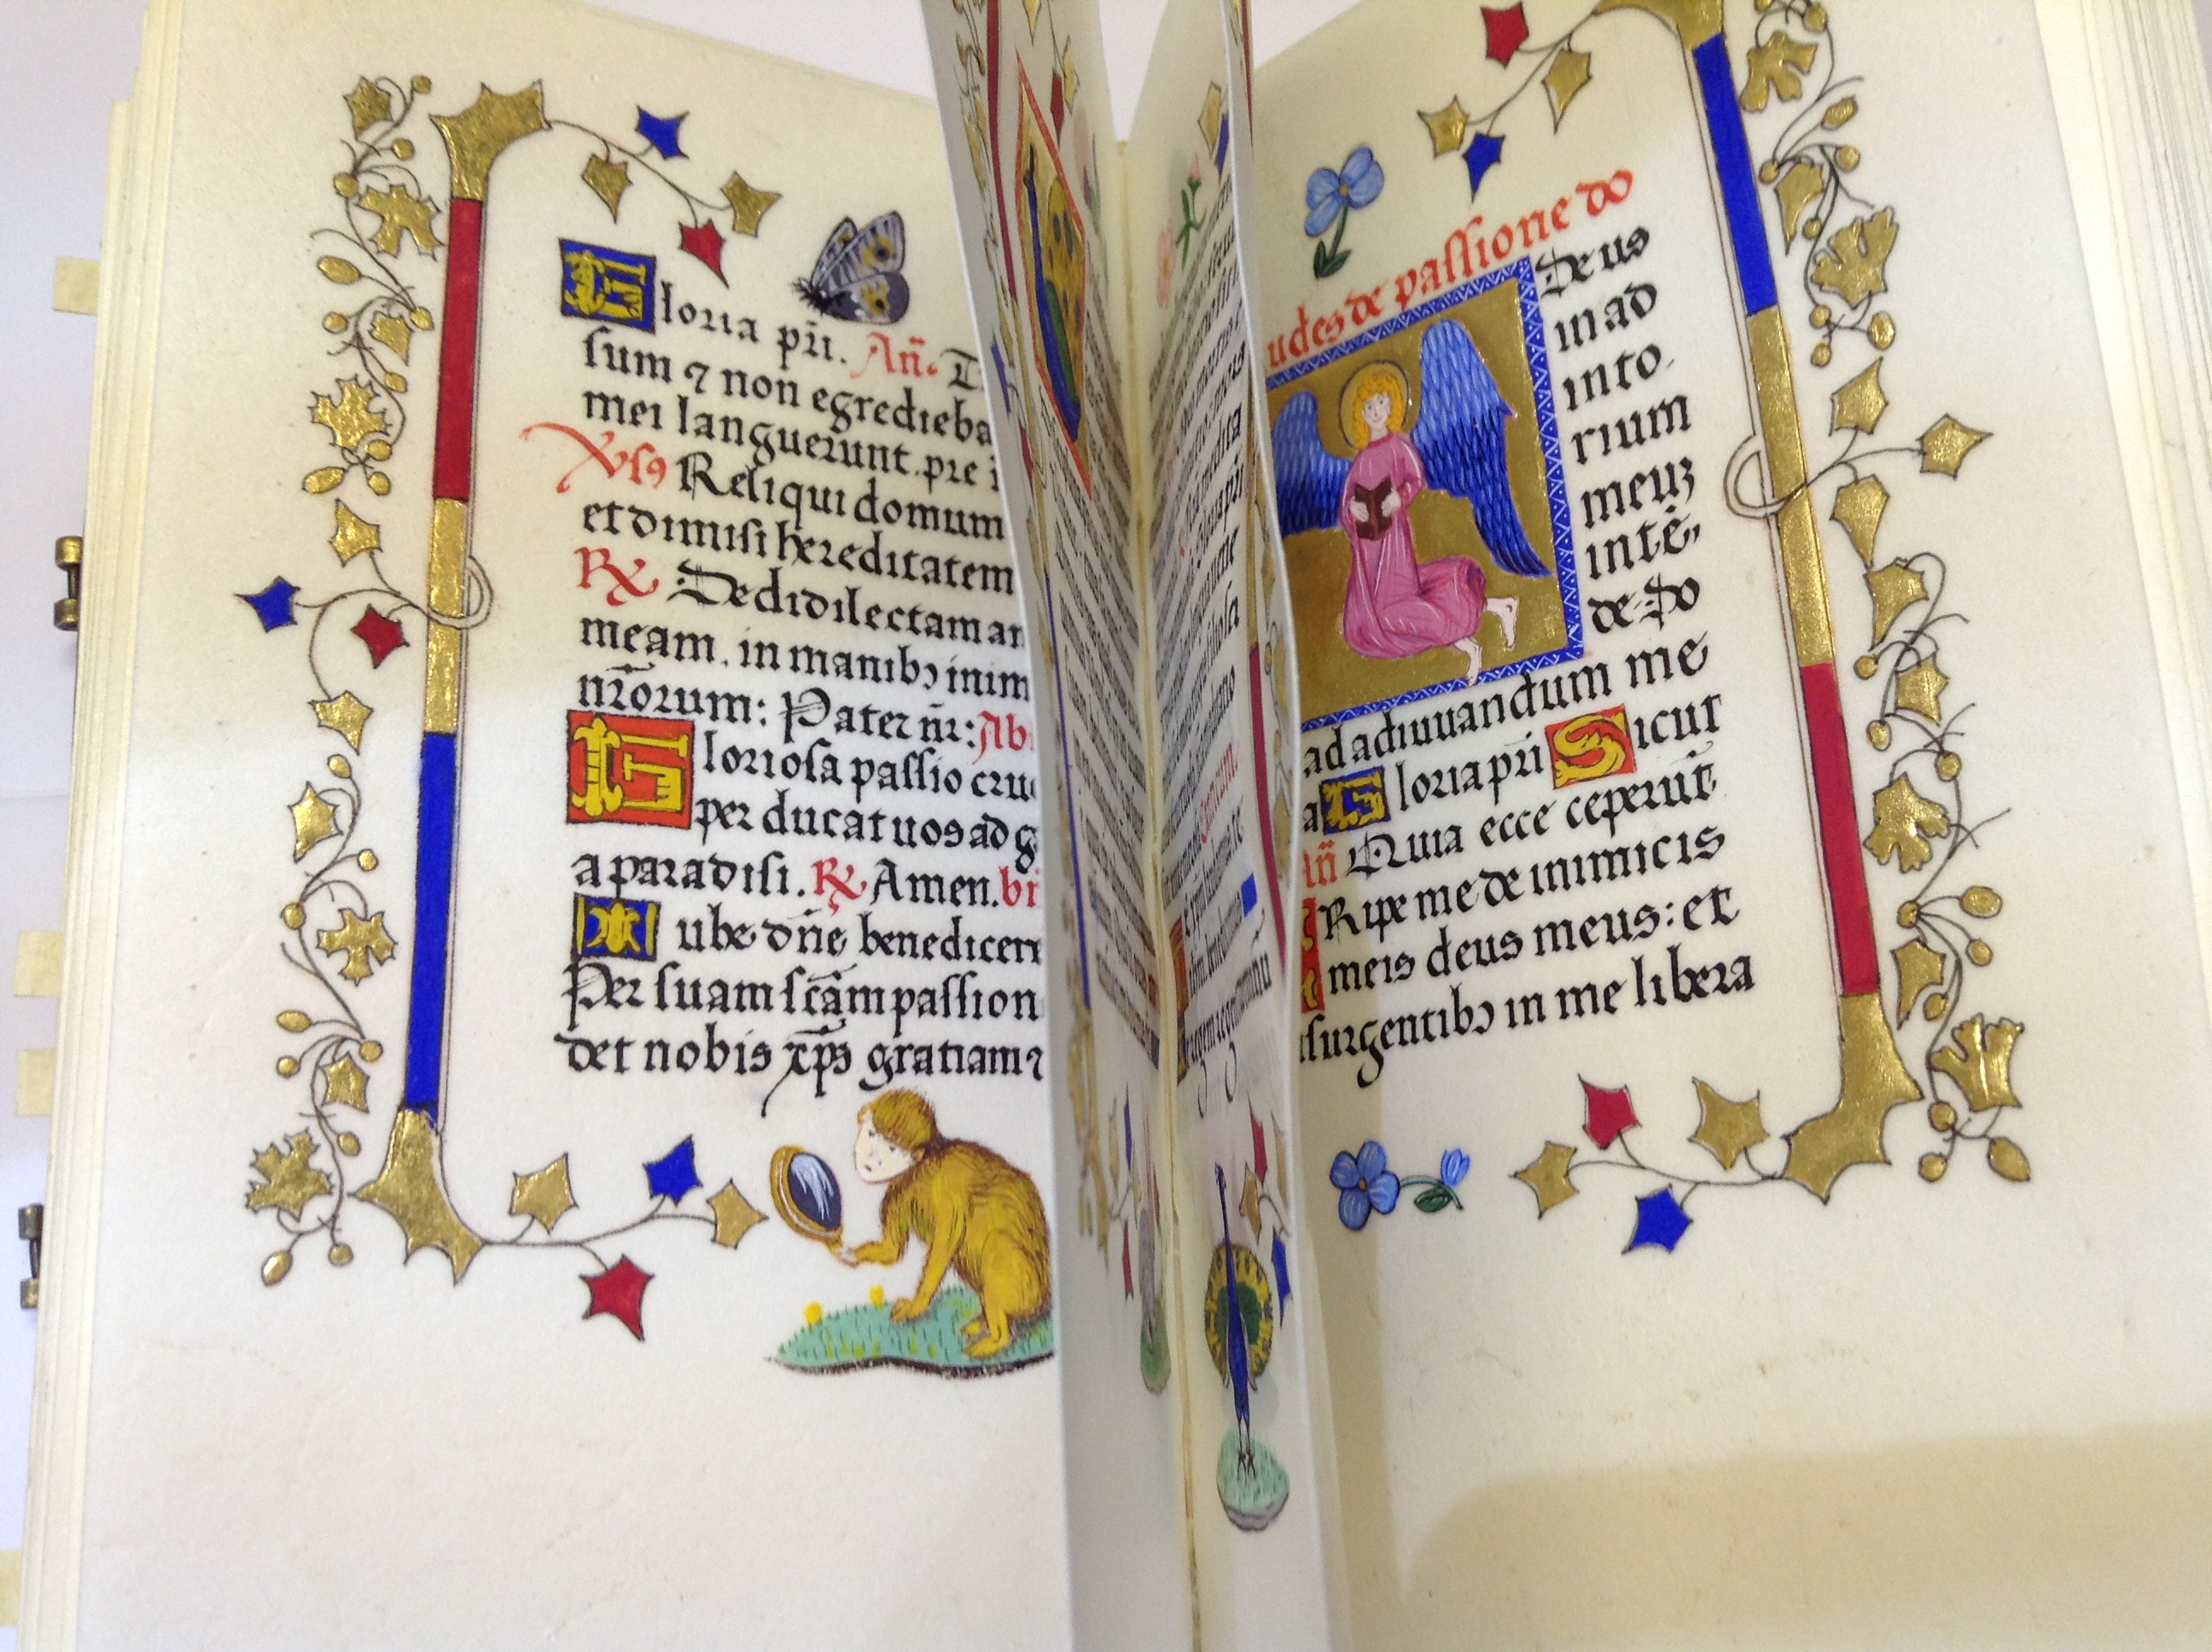 Calligraphy example in on of the Illuminated Manuscripts